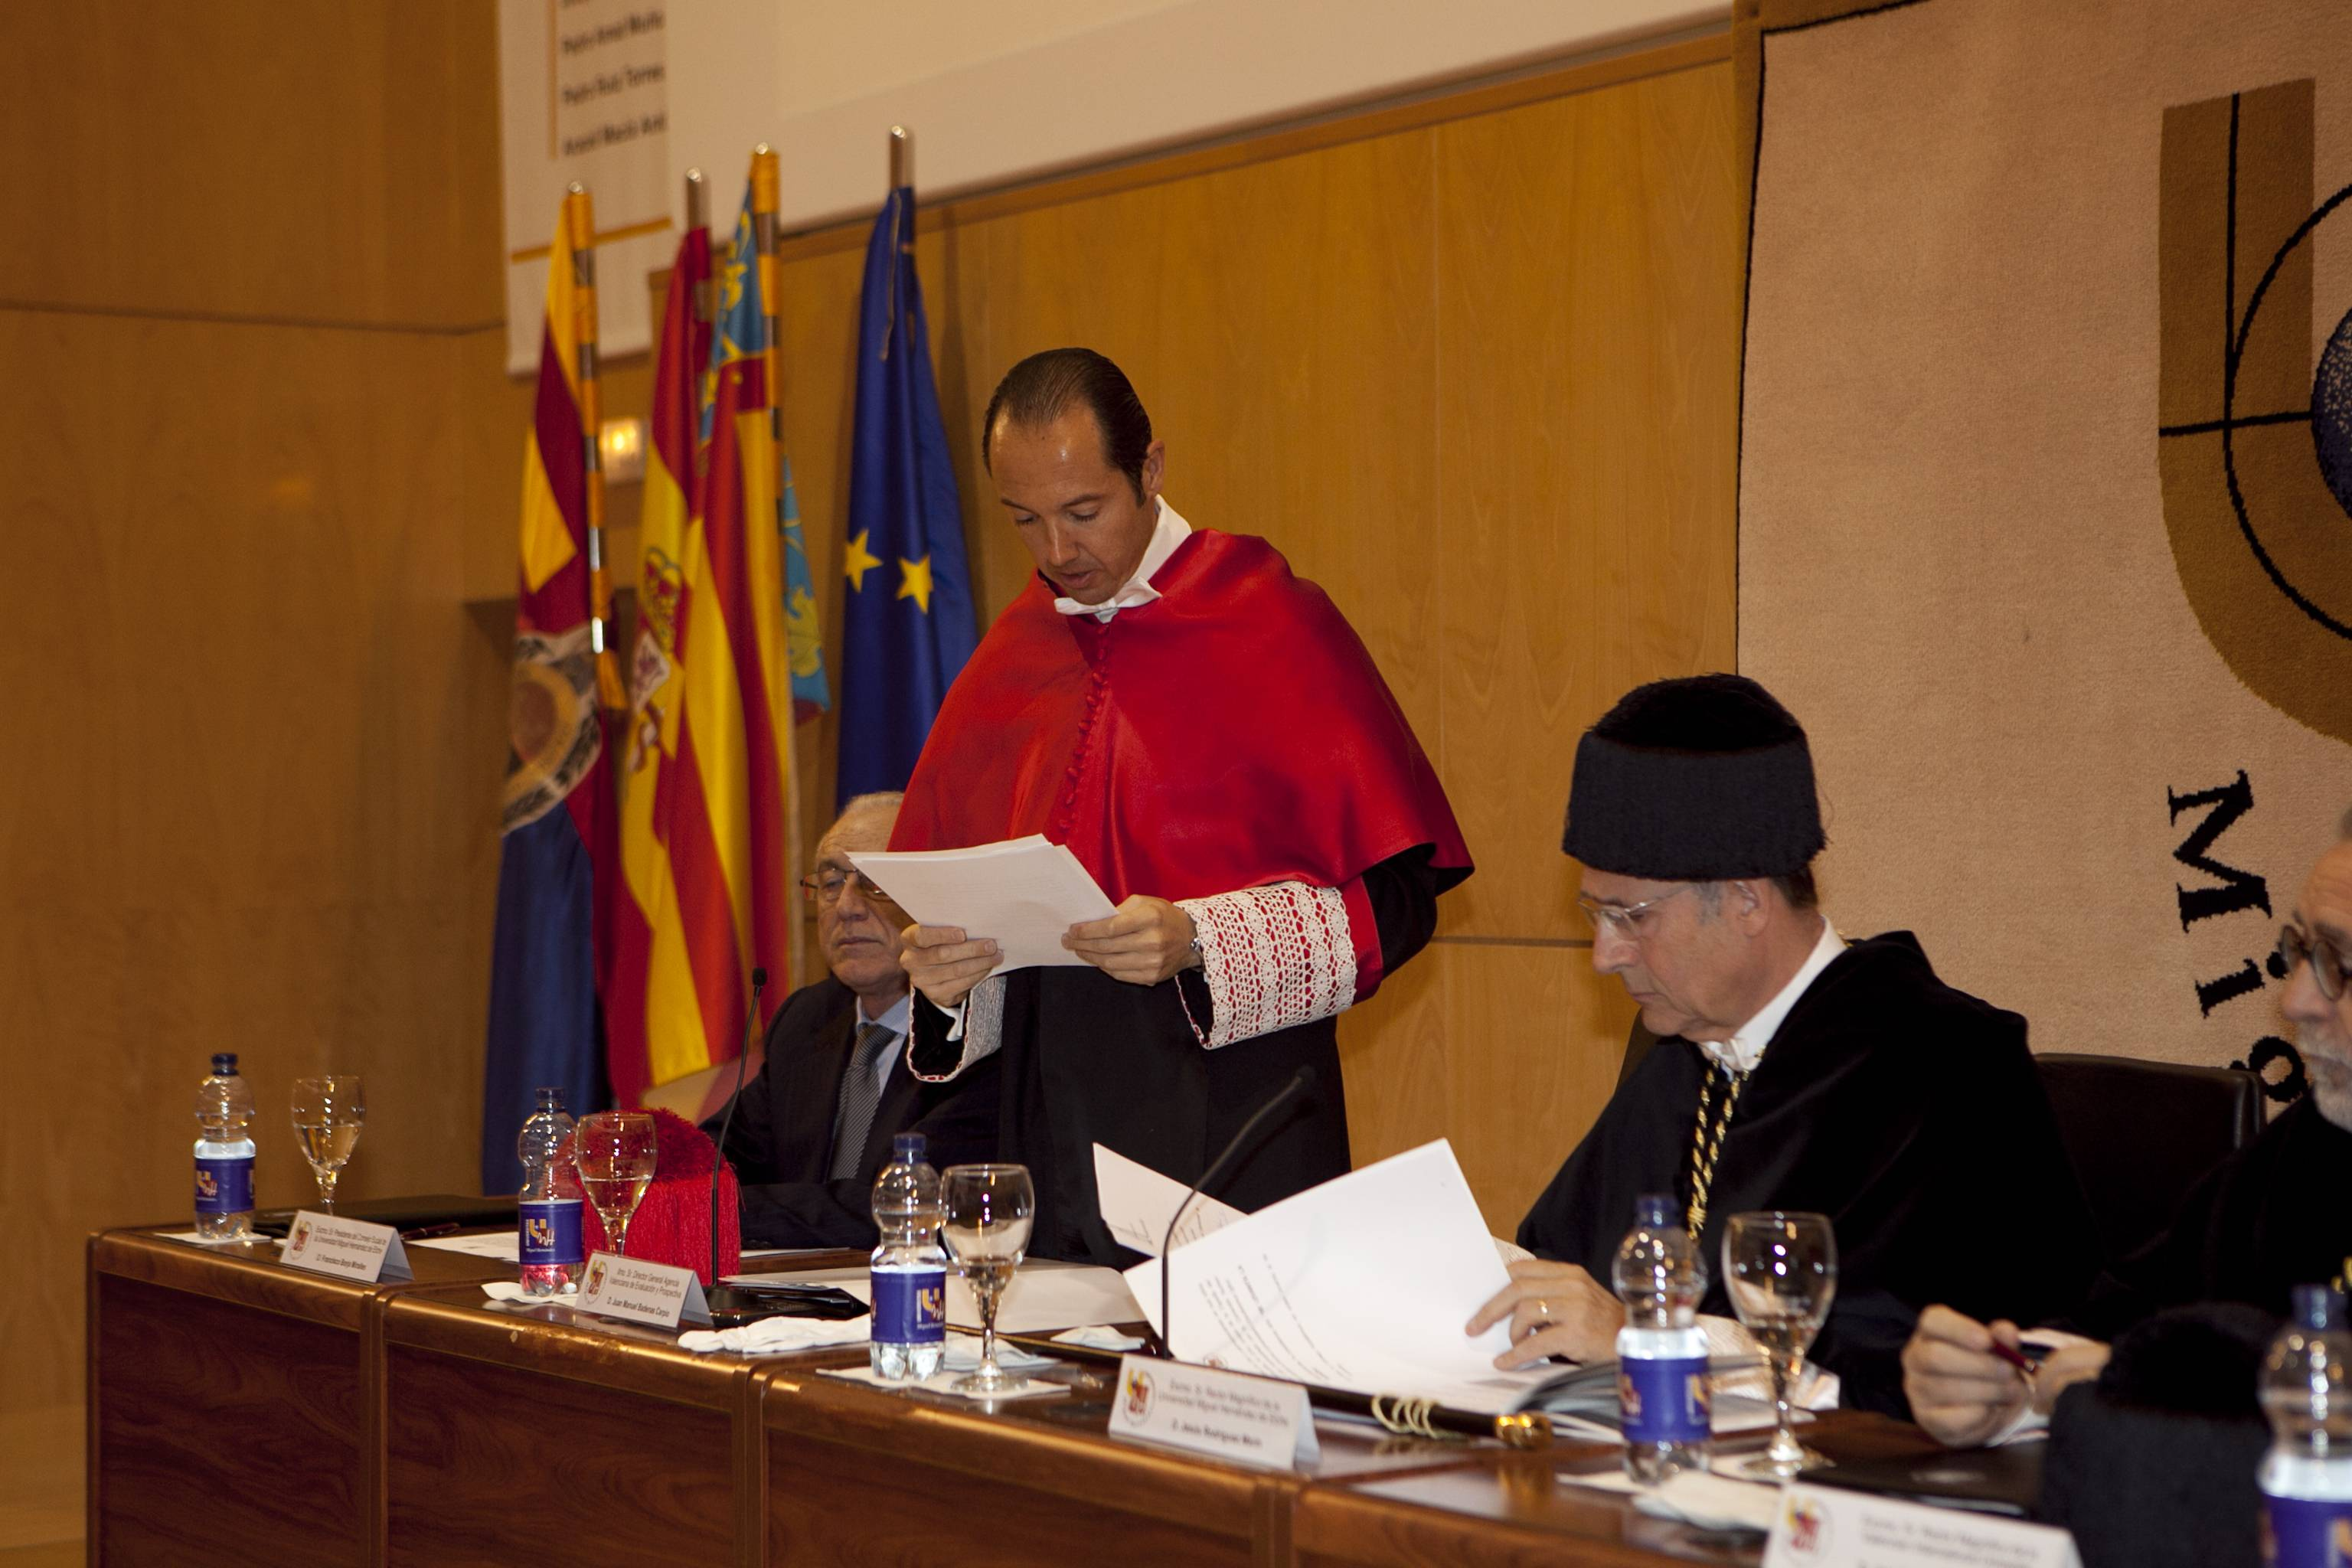 doctor-honoris-causa-luis-gamir_mg_1215.jpg